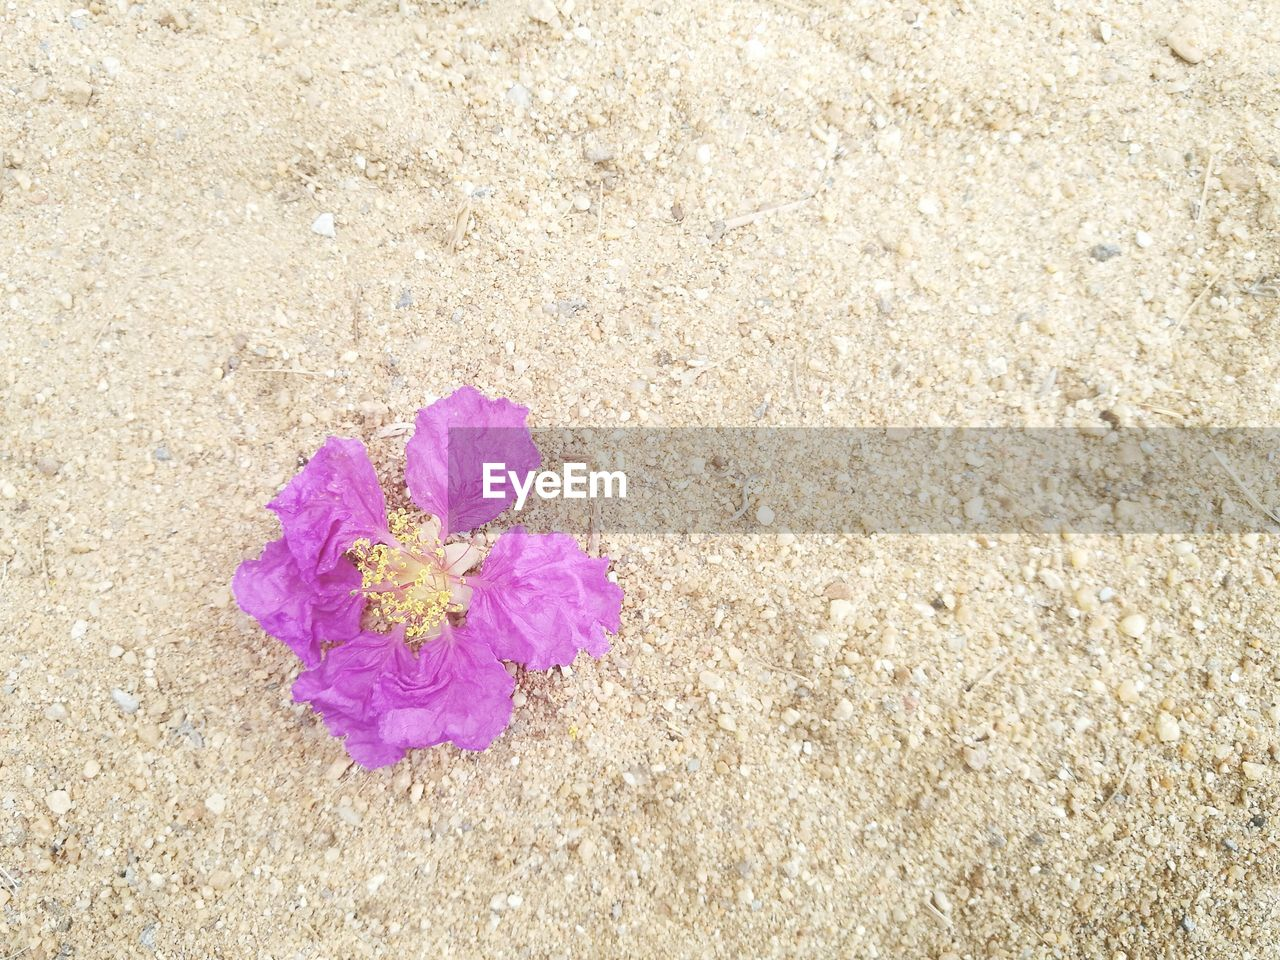 flower, nature, no people, outdoors, pink color, plant, fragility, beauty in nature, day, growth, flower head, blooming, close-up, freshness